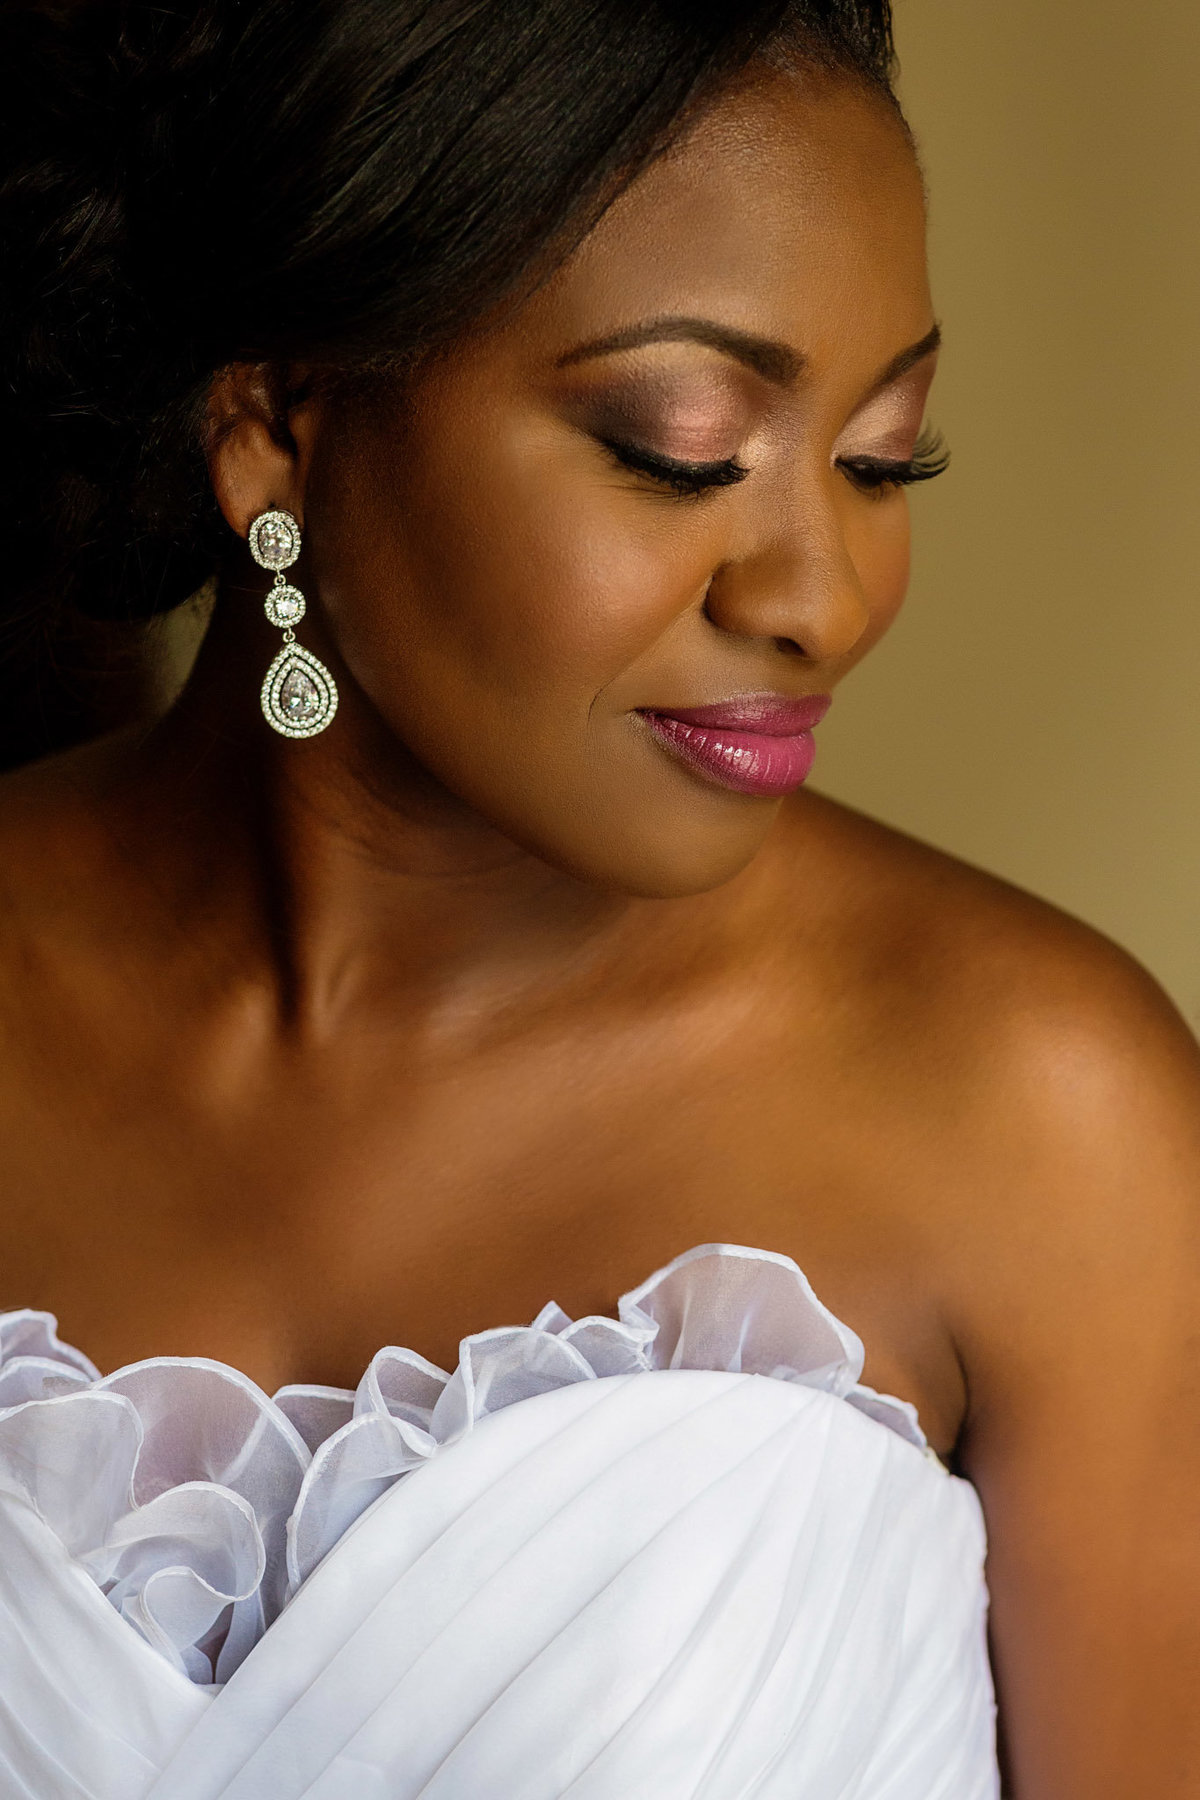 For-FacebookAndWebsites-Yewande-Lolu-Wedding-Winston-Salem-Clemmons-NC-Yoruba-Nigerian-Kumolu-Studios-255